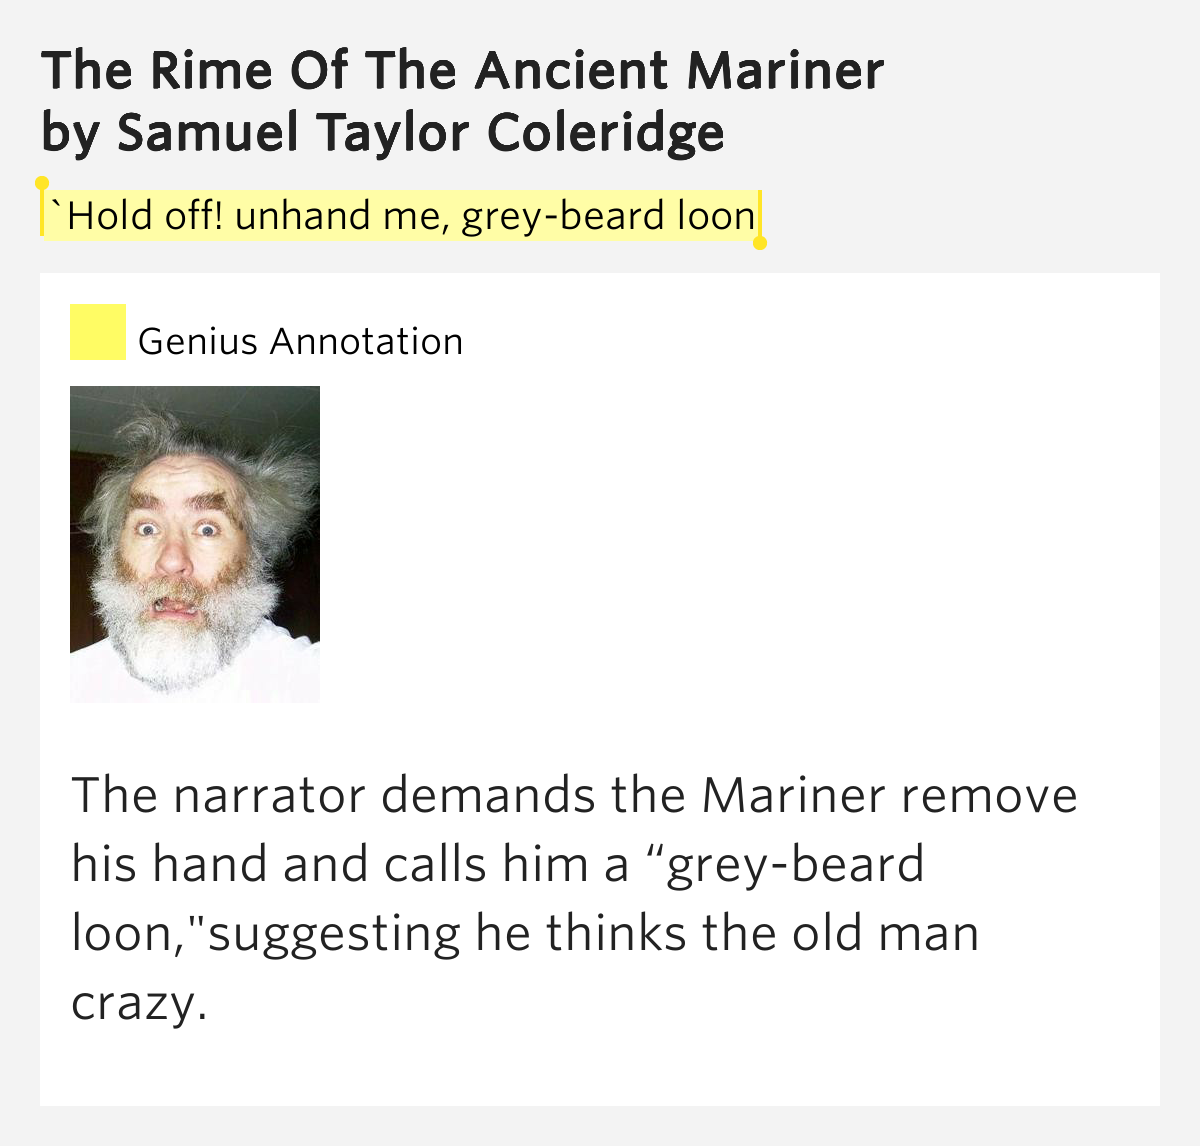 samuel coleridge the rime of the ancient mariner essay The rime of the ancient mariner study guide contains a biography of samuel coleridge, literature essays, a complete e-text, quiz questions, major themes, characters.